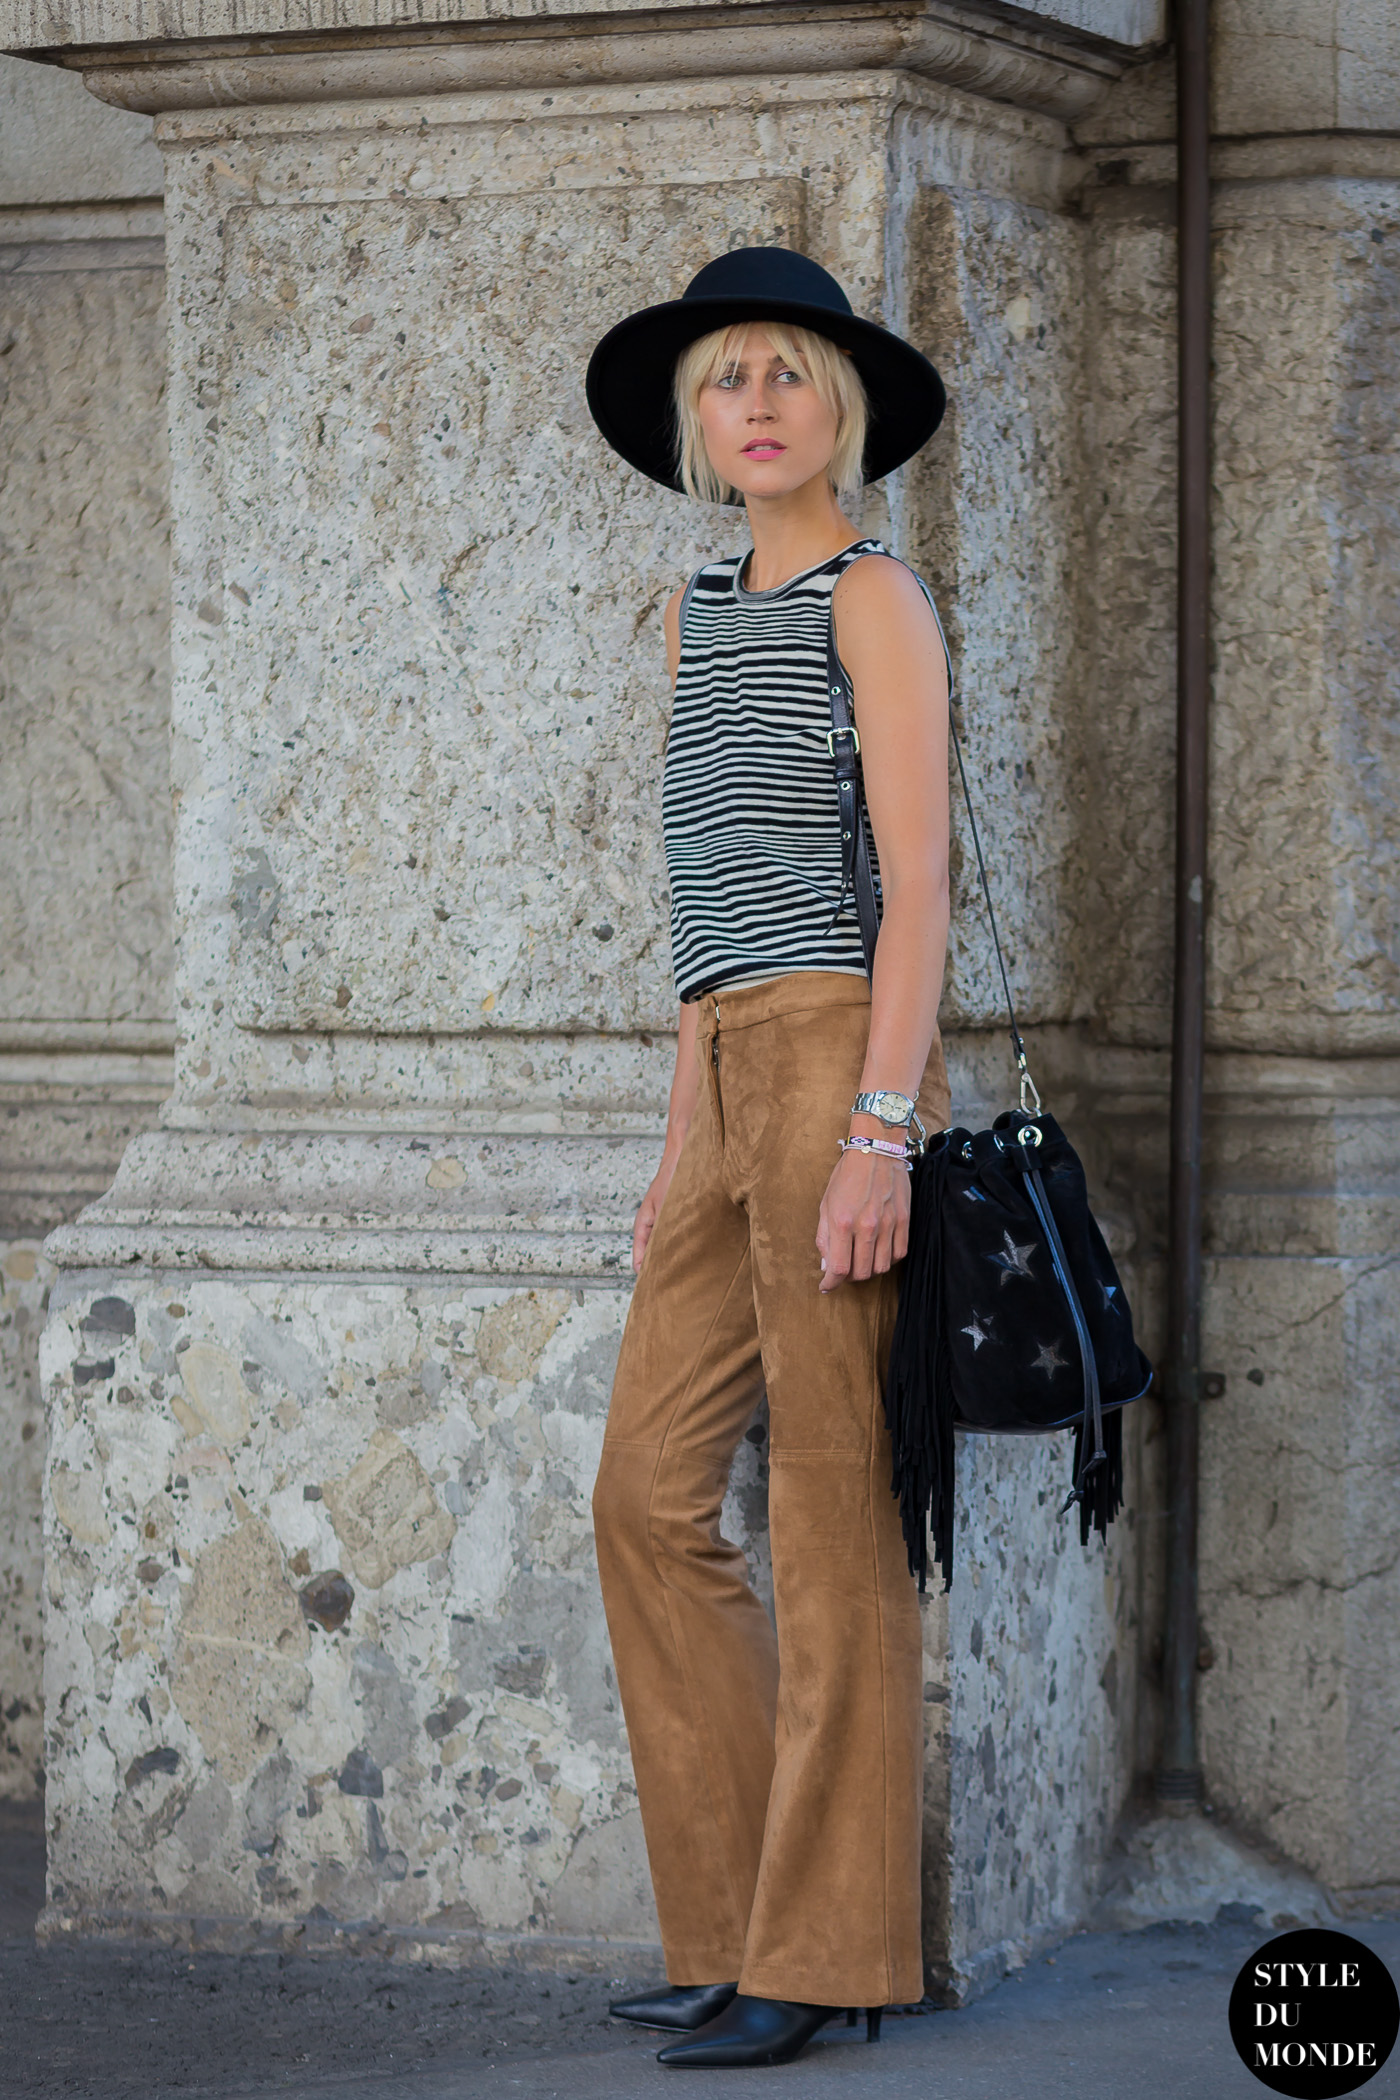 Linda Tol Street Style Street Fashion Streetsnaps by STYLEDUMONDE Street Style Fashion Photography